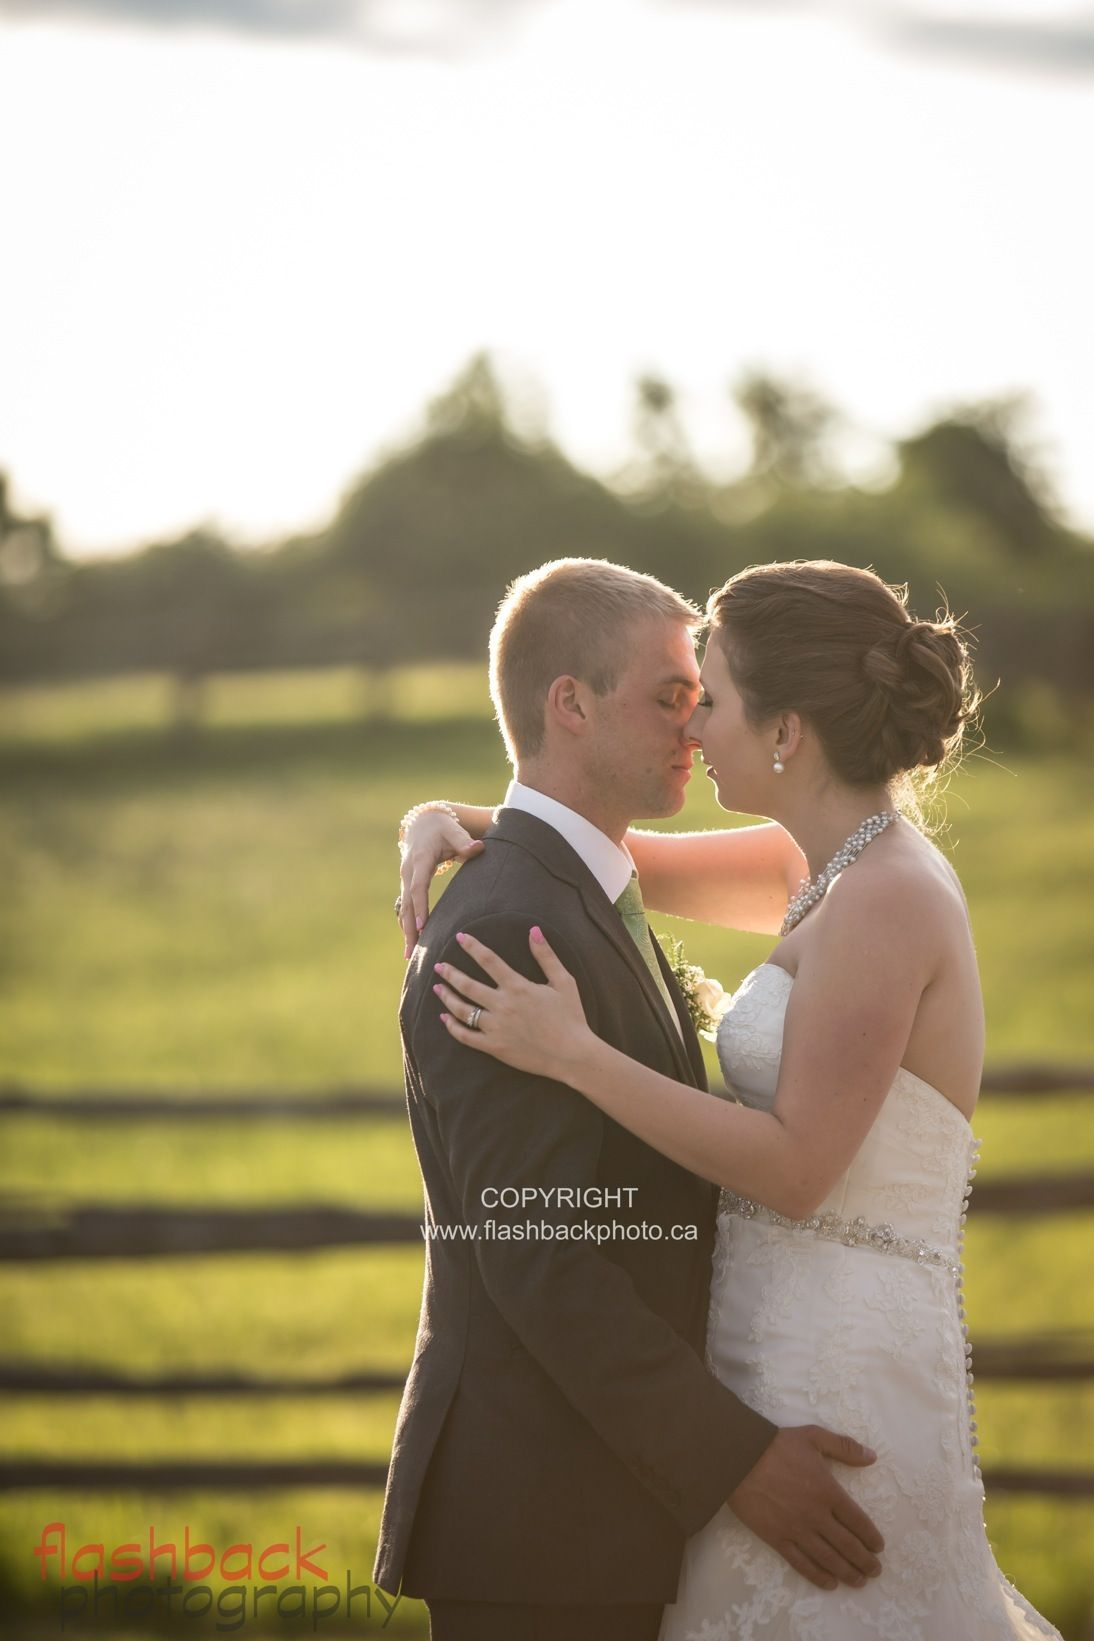 Wedding portrait of couple on family farm in Lindsay, Ontario. Copyright Flashback Photography. www.flashbackphoto.ca.  See more images from this wedding: http://www.flashbackphoto.ca/beautiful-bride-and-groom-farm-portraits/